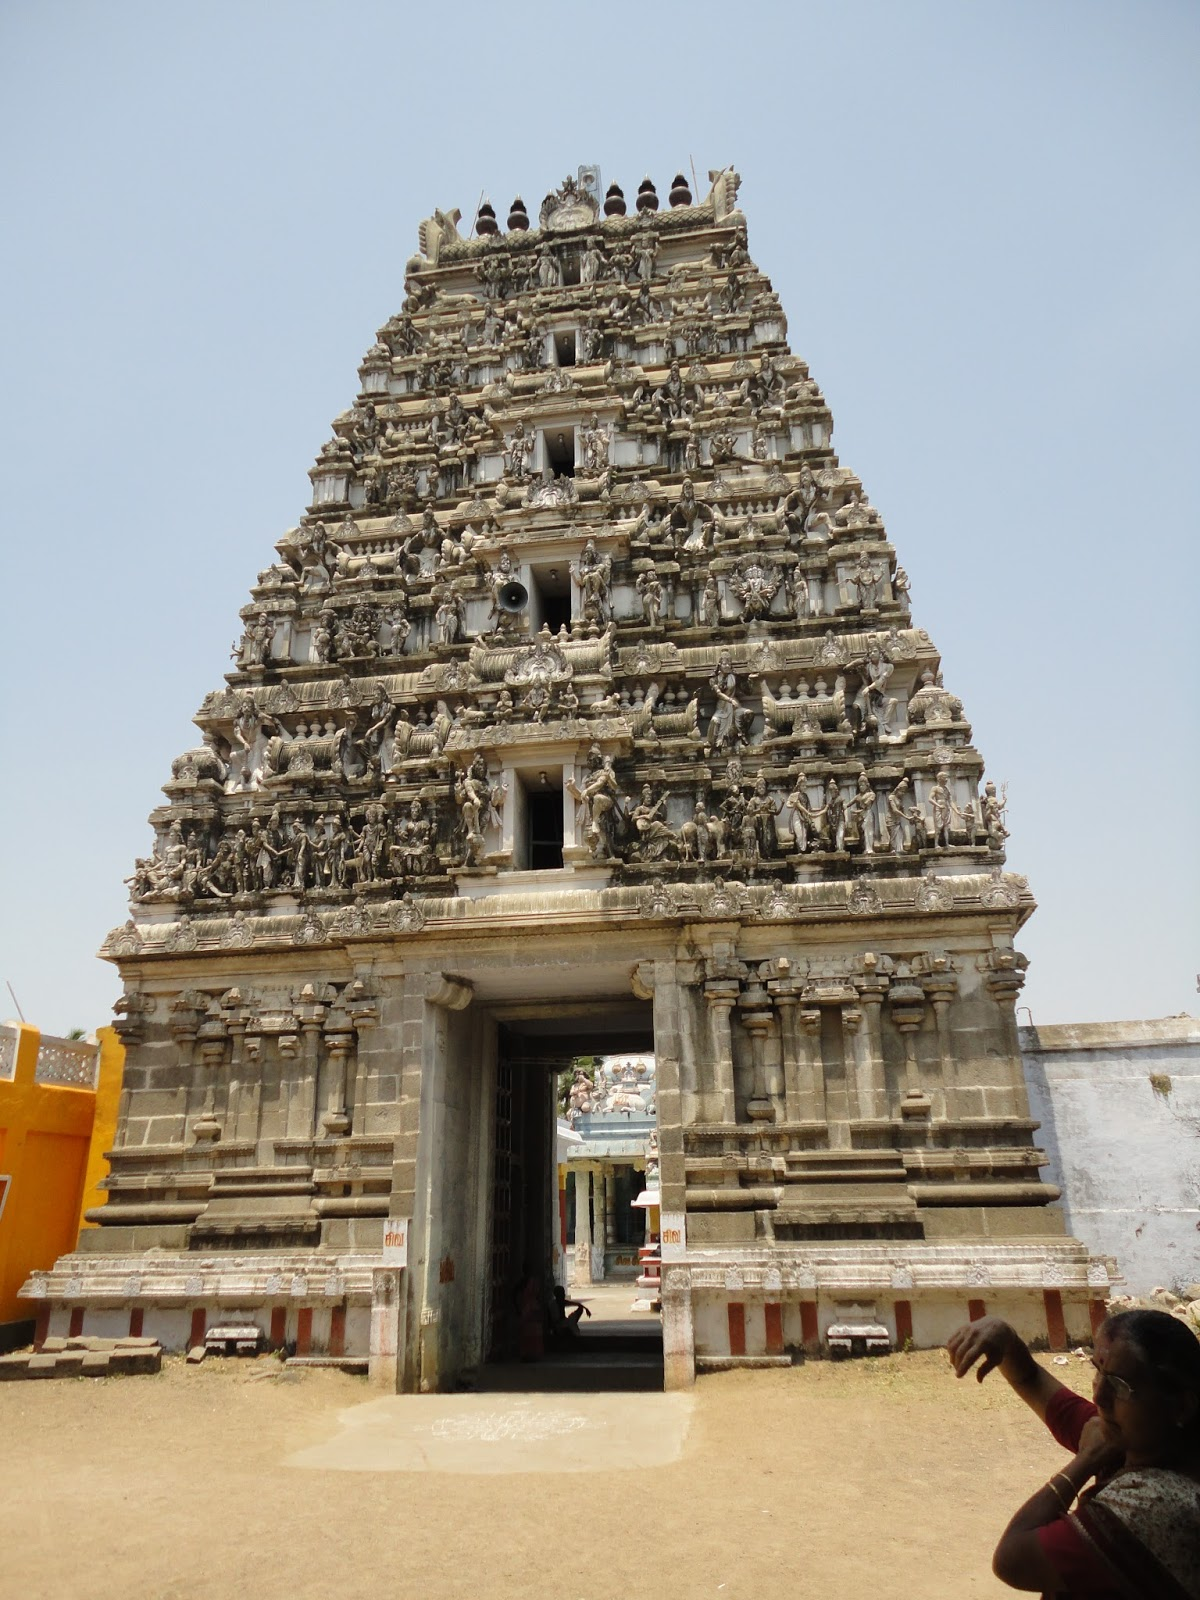 Temples of India: from antiquity to our days